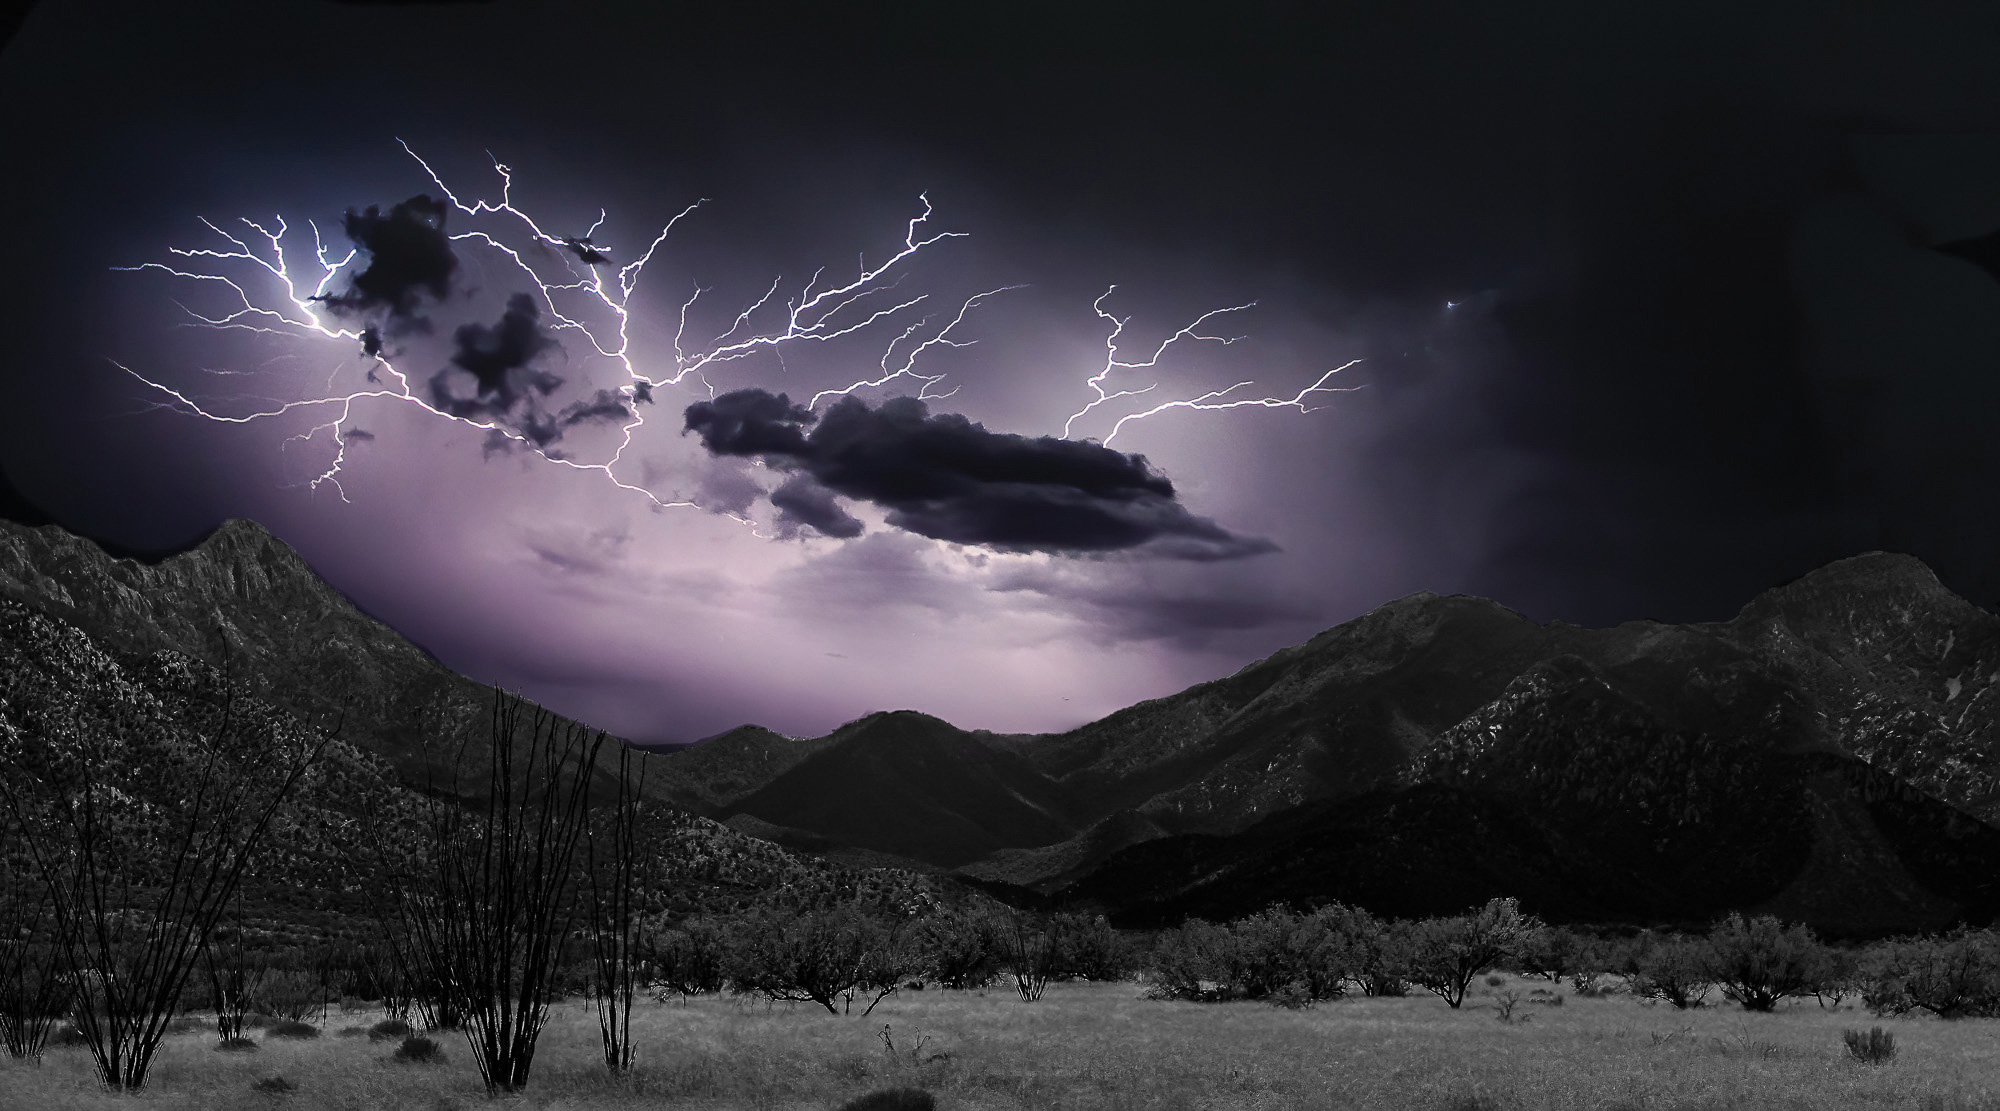 Second place, entry number 16, Greased Lightning by Jim Burkstrand